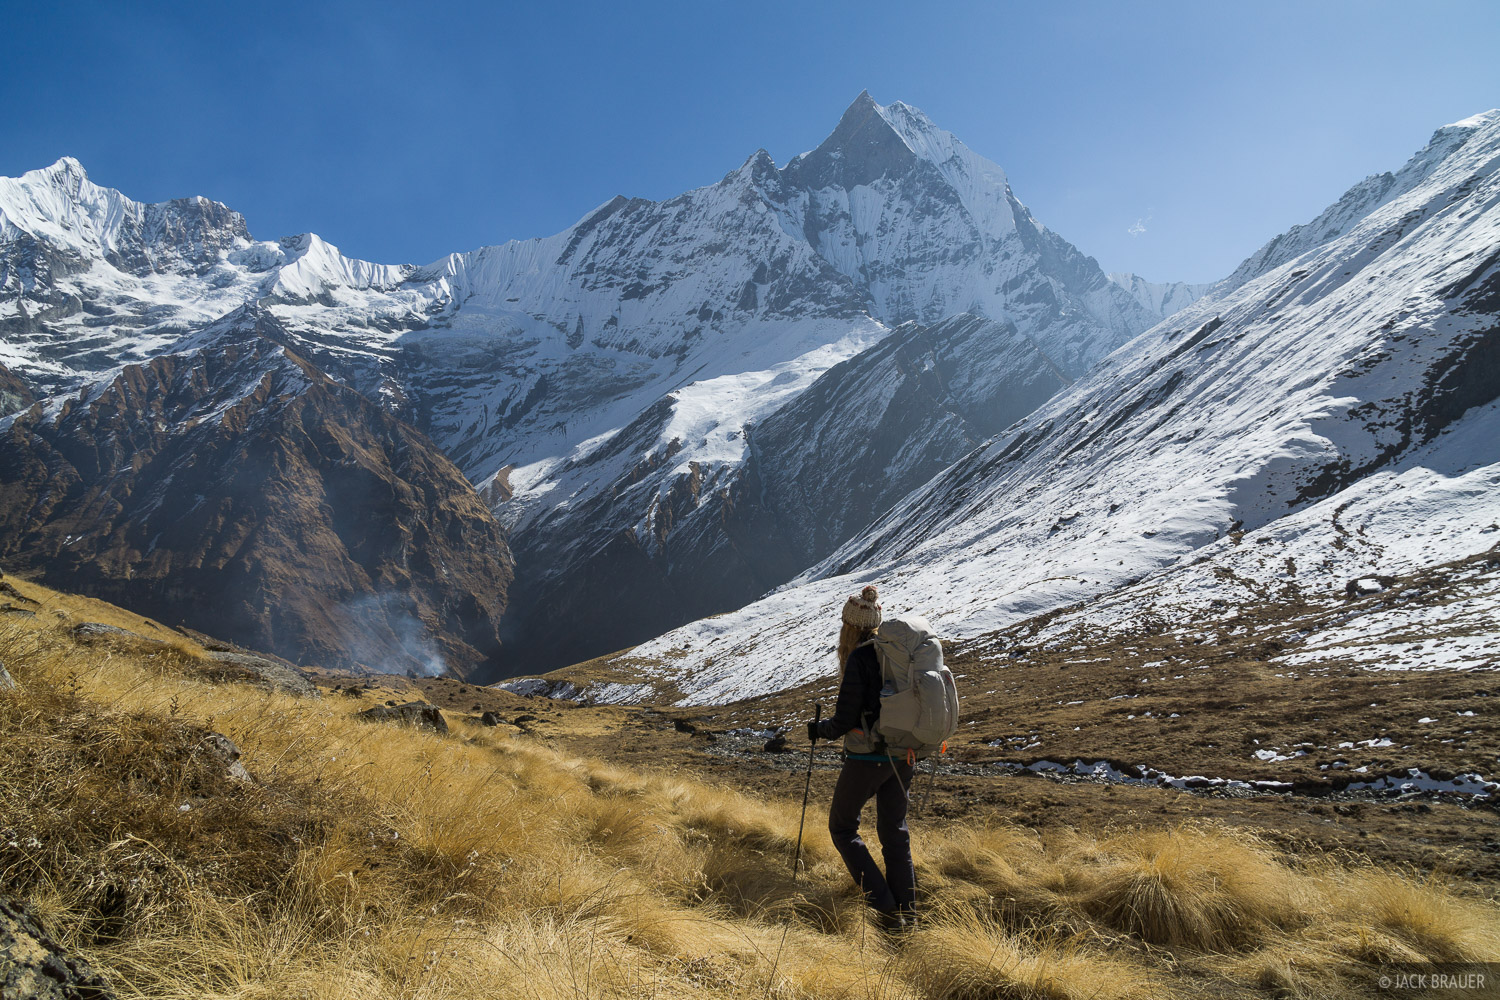 Hiking away from Annapurna Base Camp, with Machhapuchhre towering above.